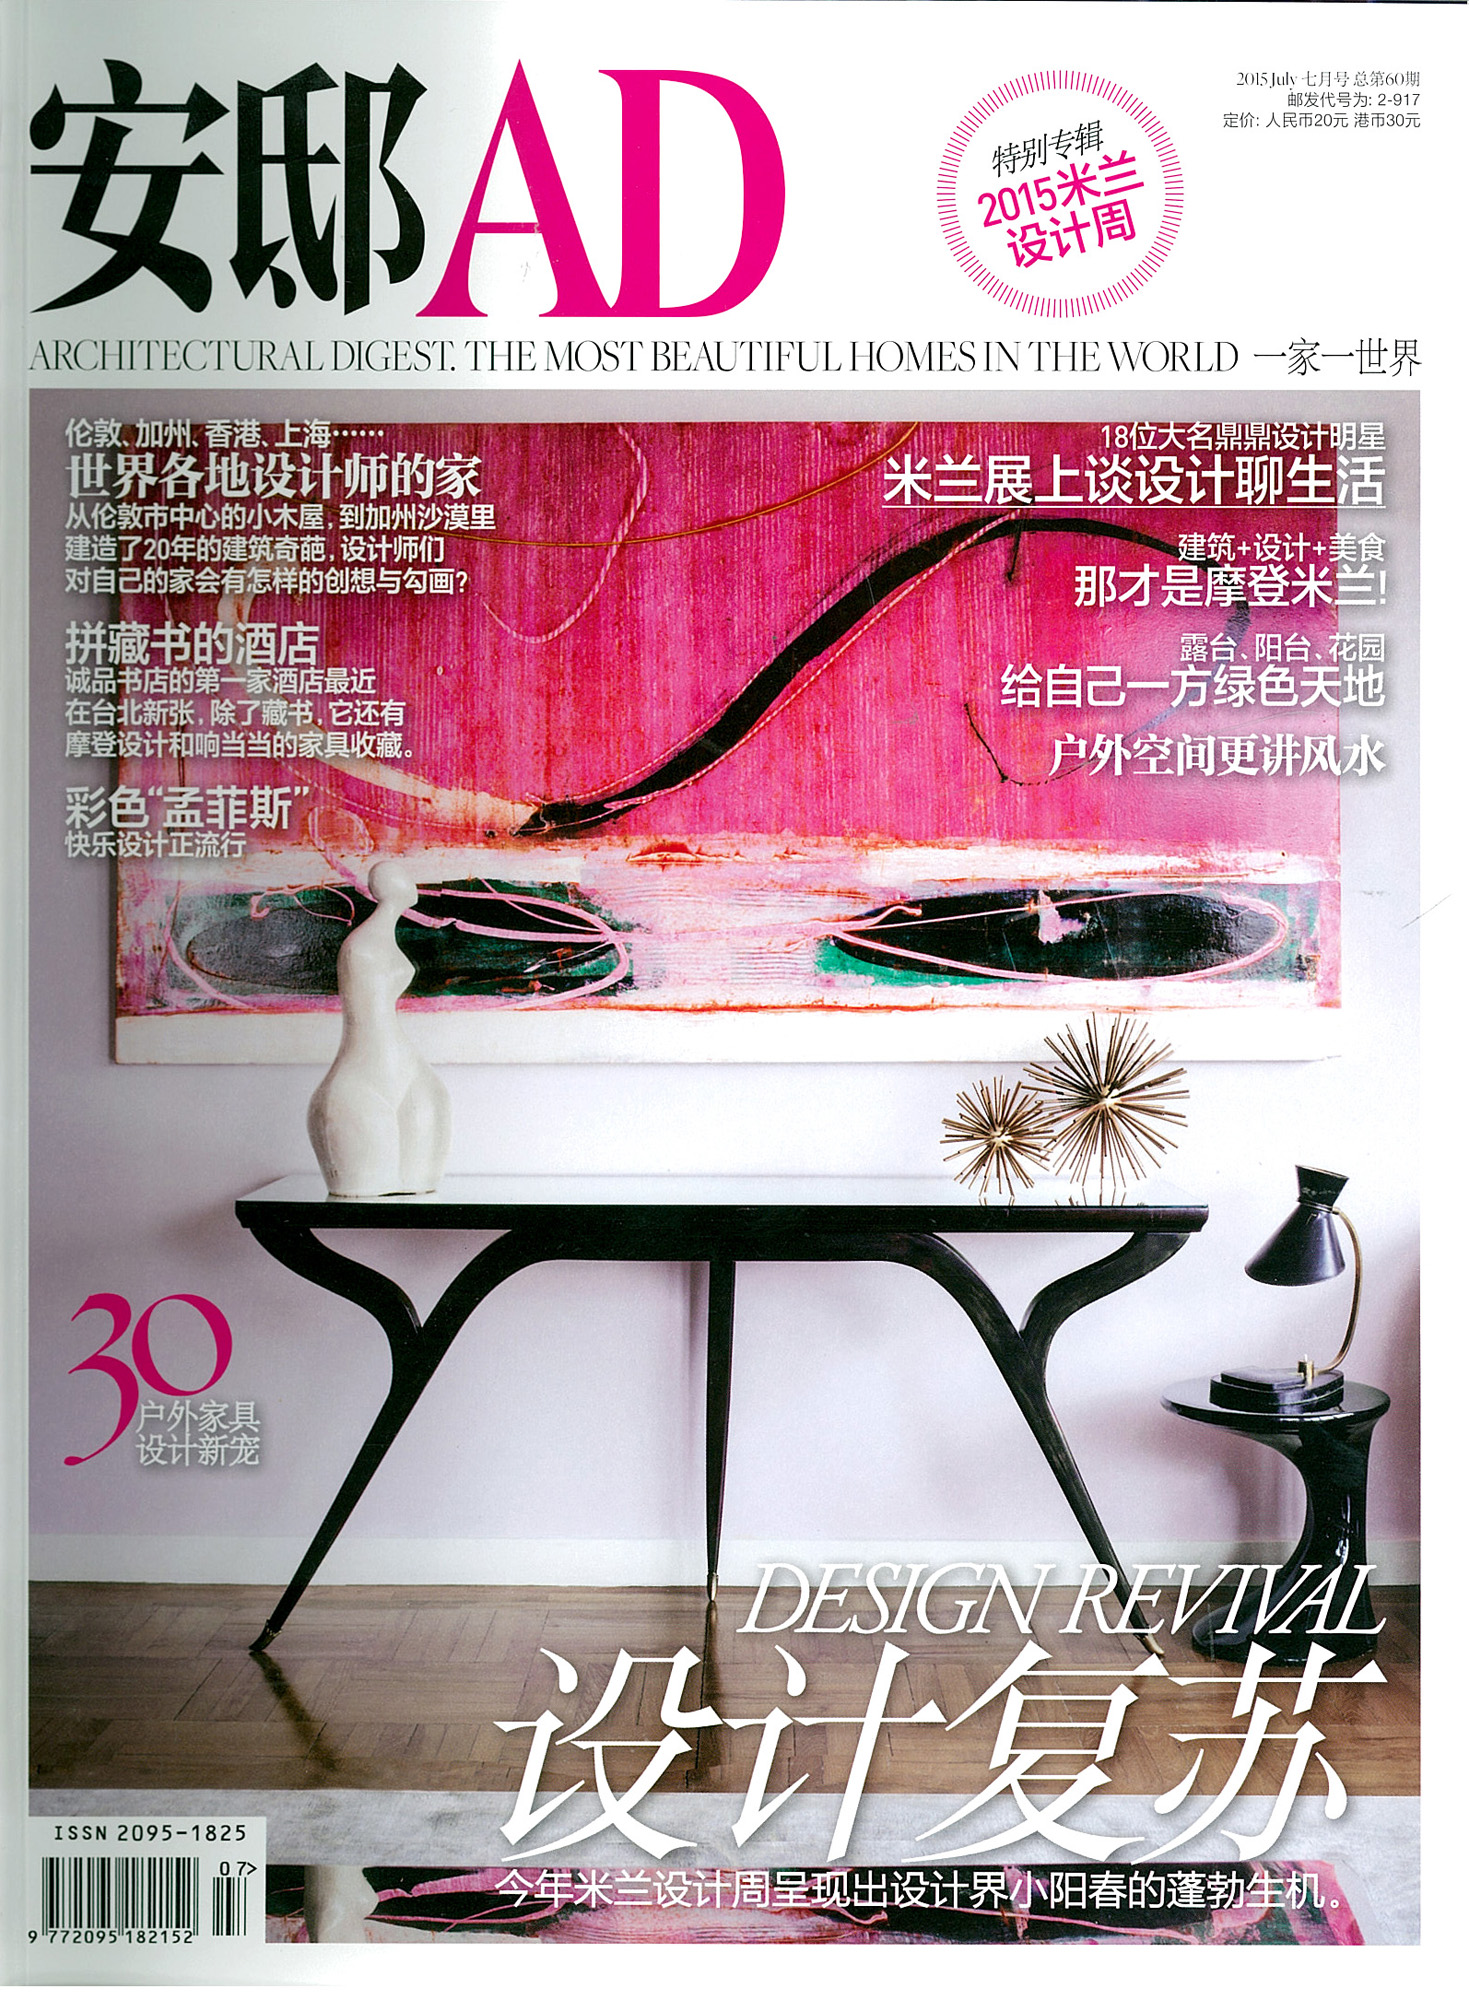 安邸AD Vol. 60 - July 2015